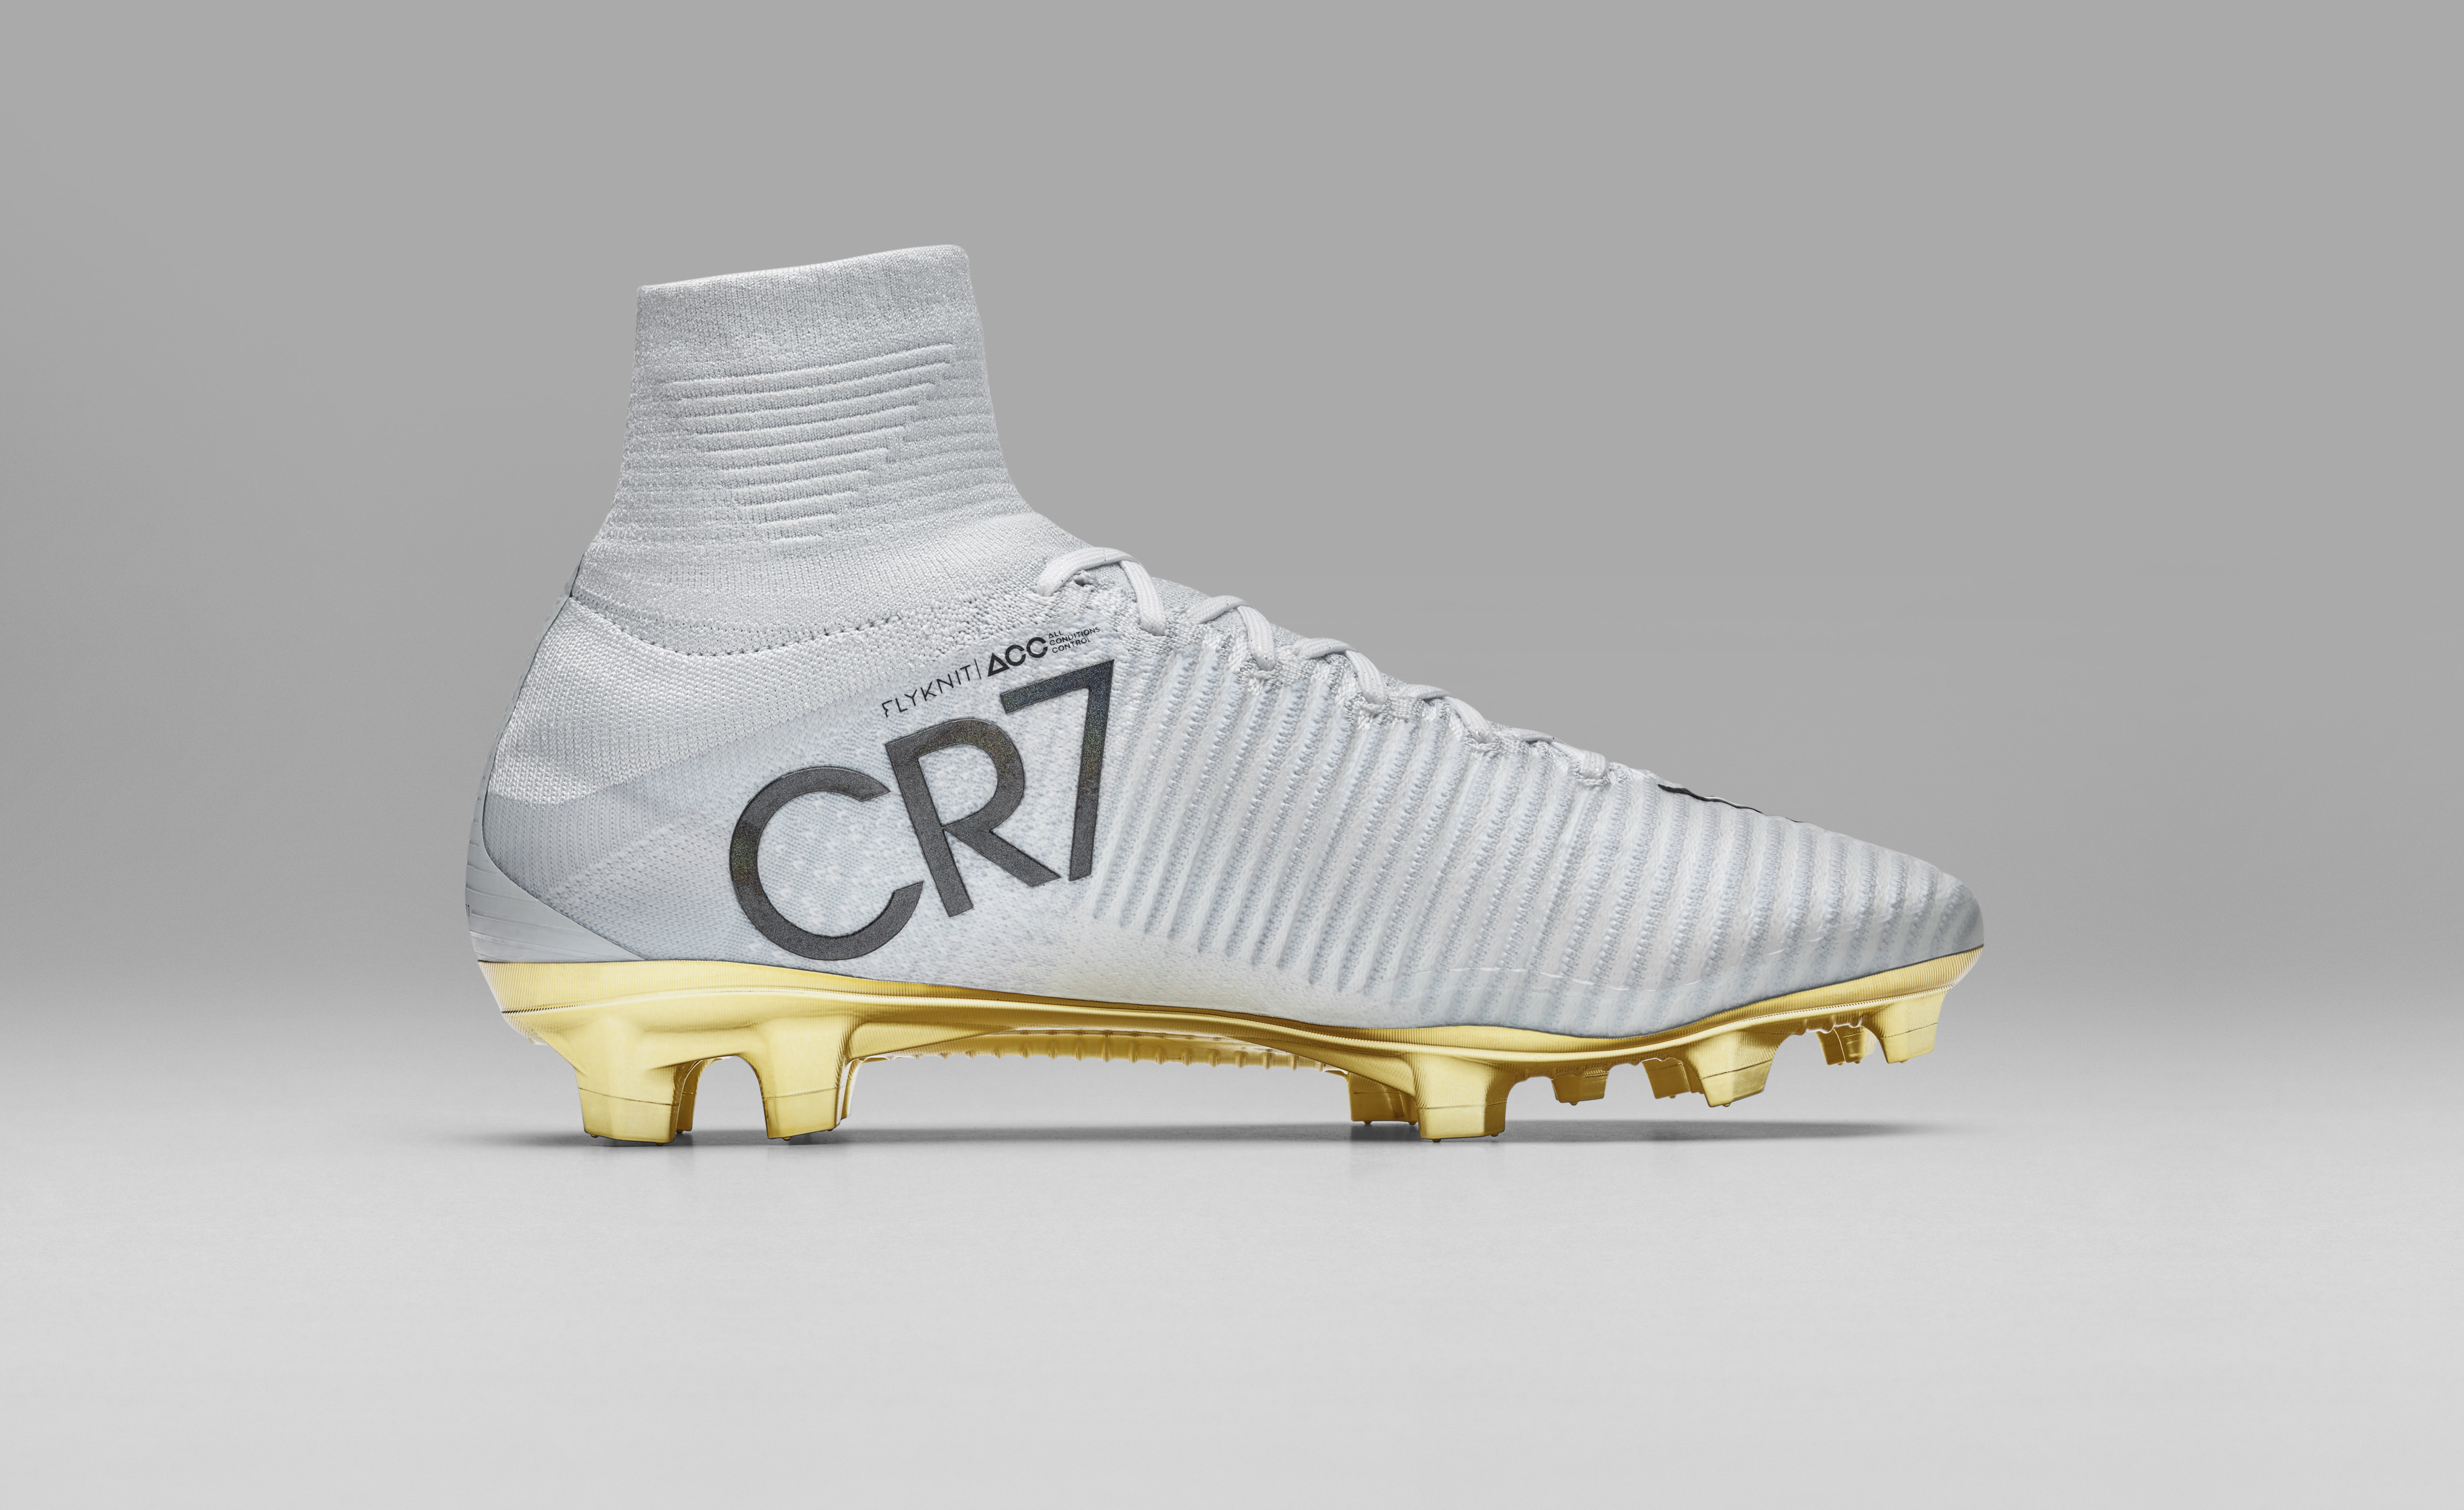 huge discount 6e0d0 372b5 Nike Drop Super-Limited Edition Mercurial Superfly CR7 to Celebrate ...